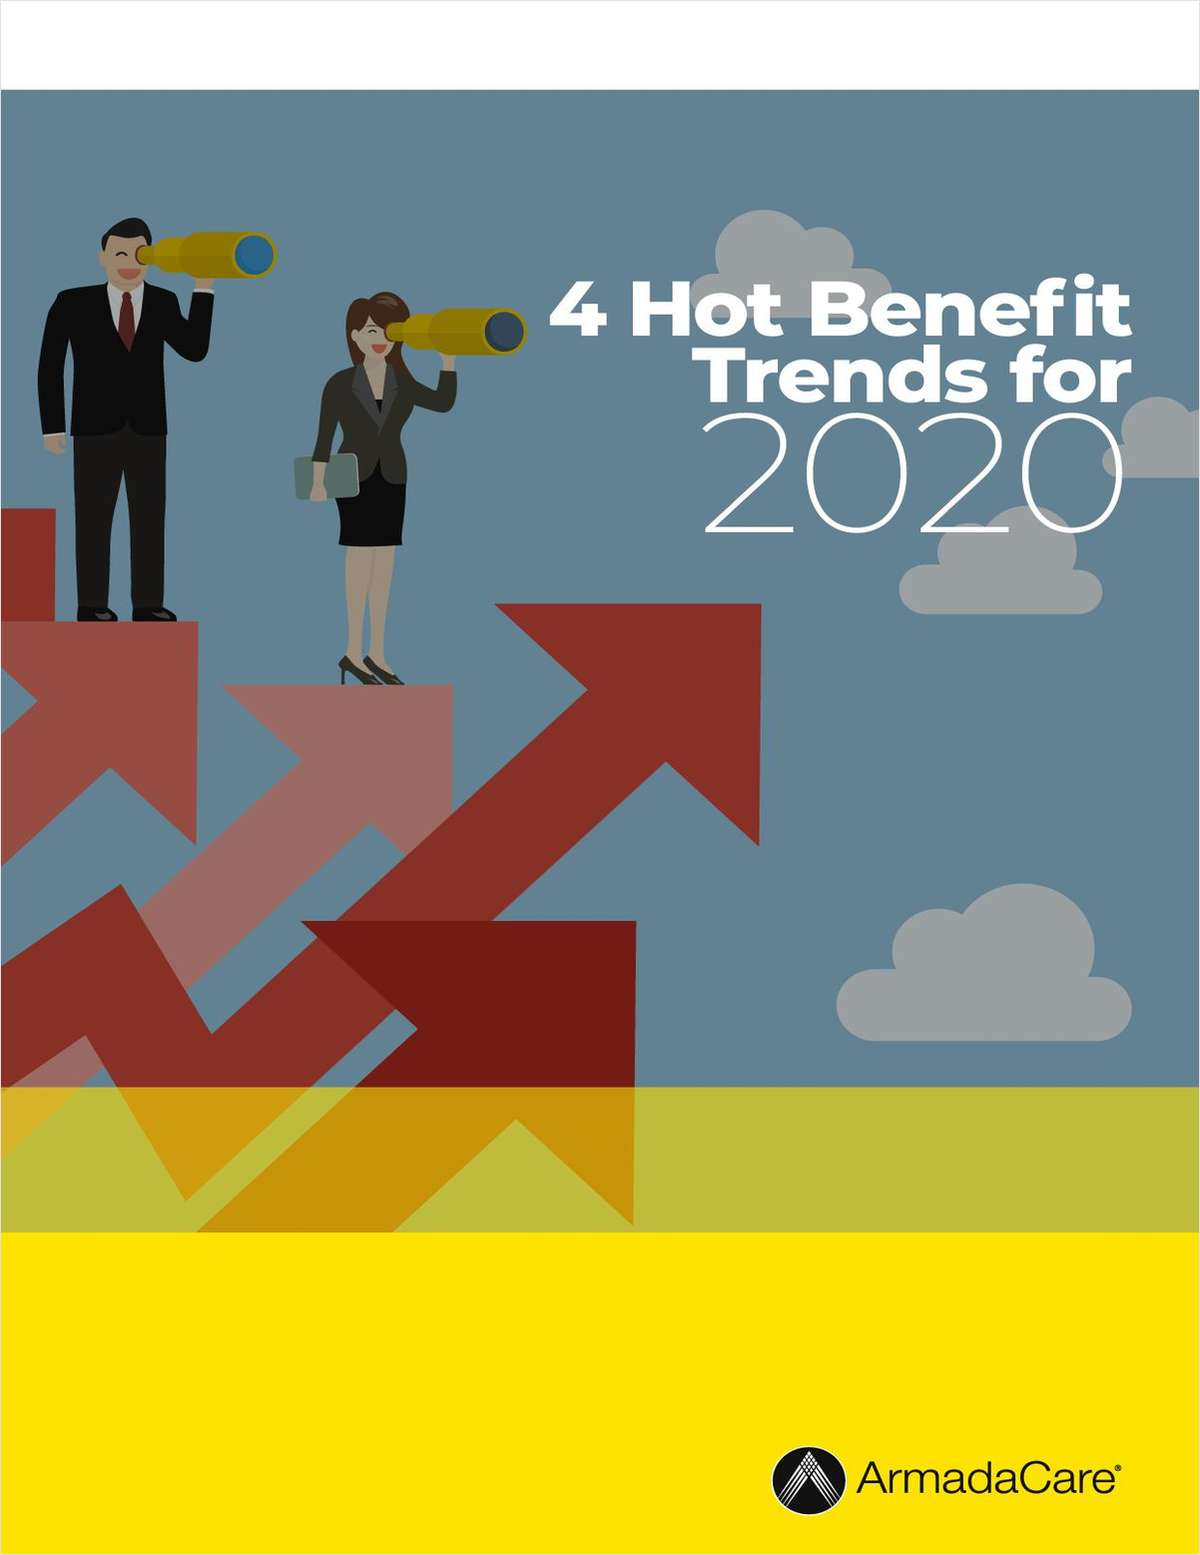 4 Hot Benefit Trends for 2020